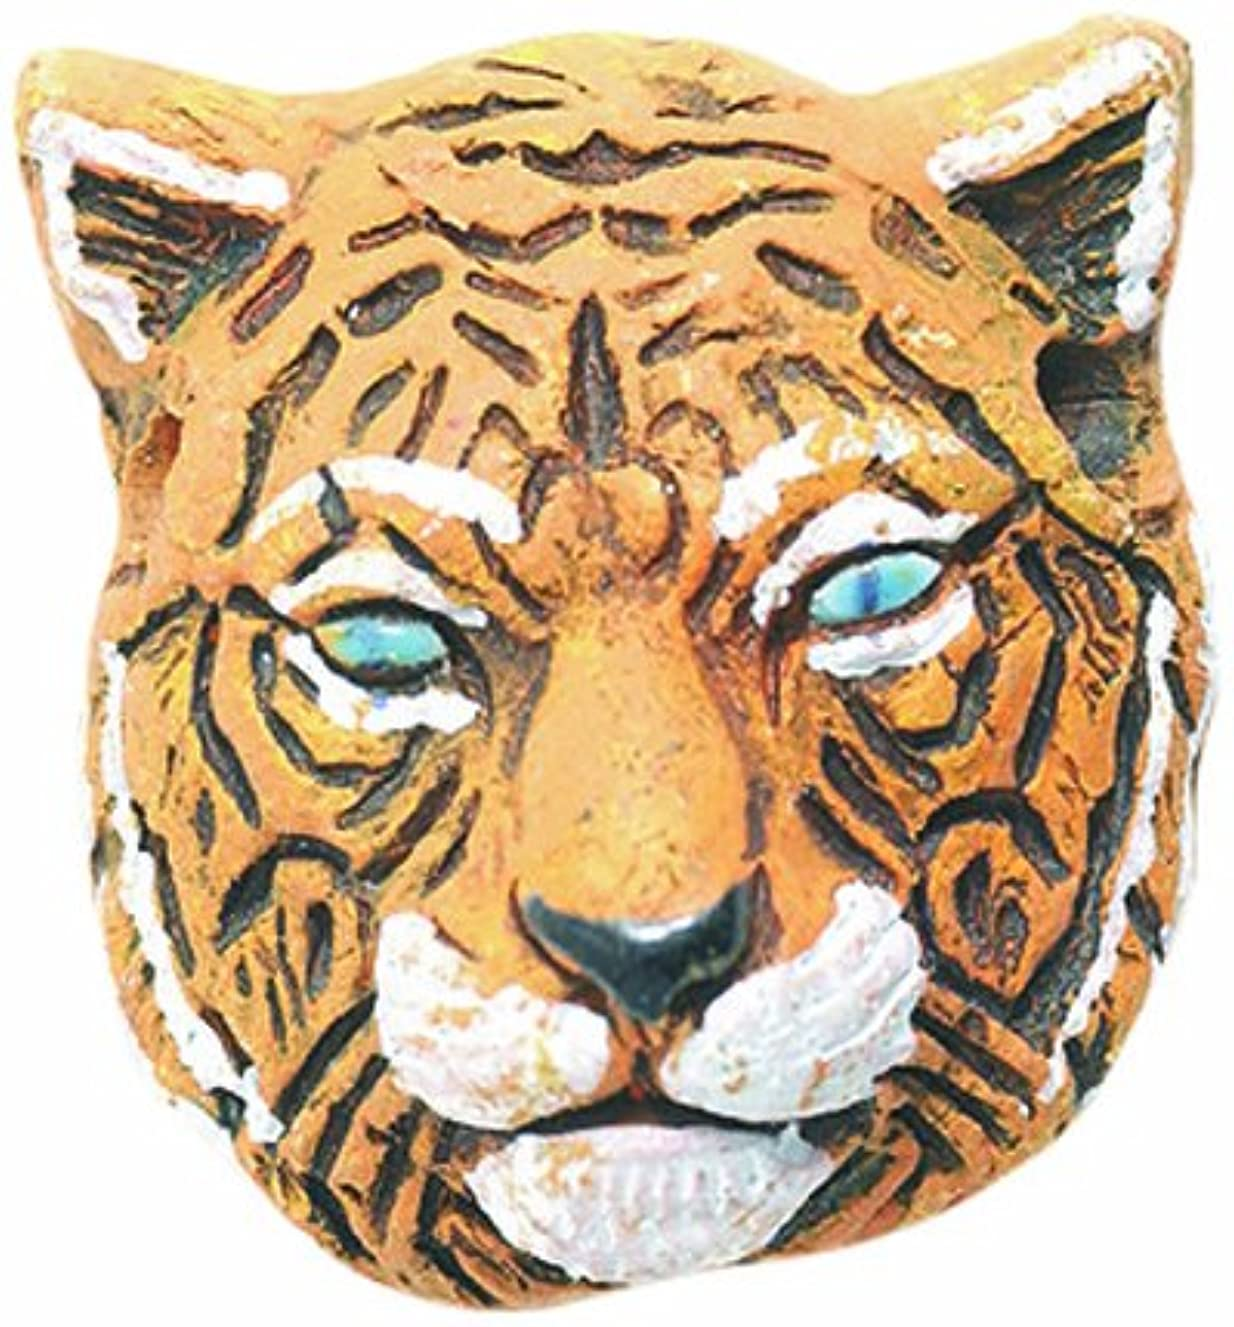 Shipwreck Beads 24 by 27mm Peruvian Hand Crafted Ceramic Tiger Face Beads, 3 Per Pack